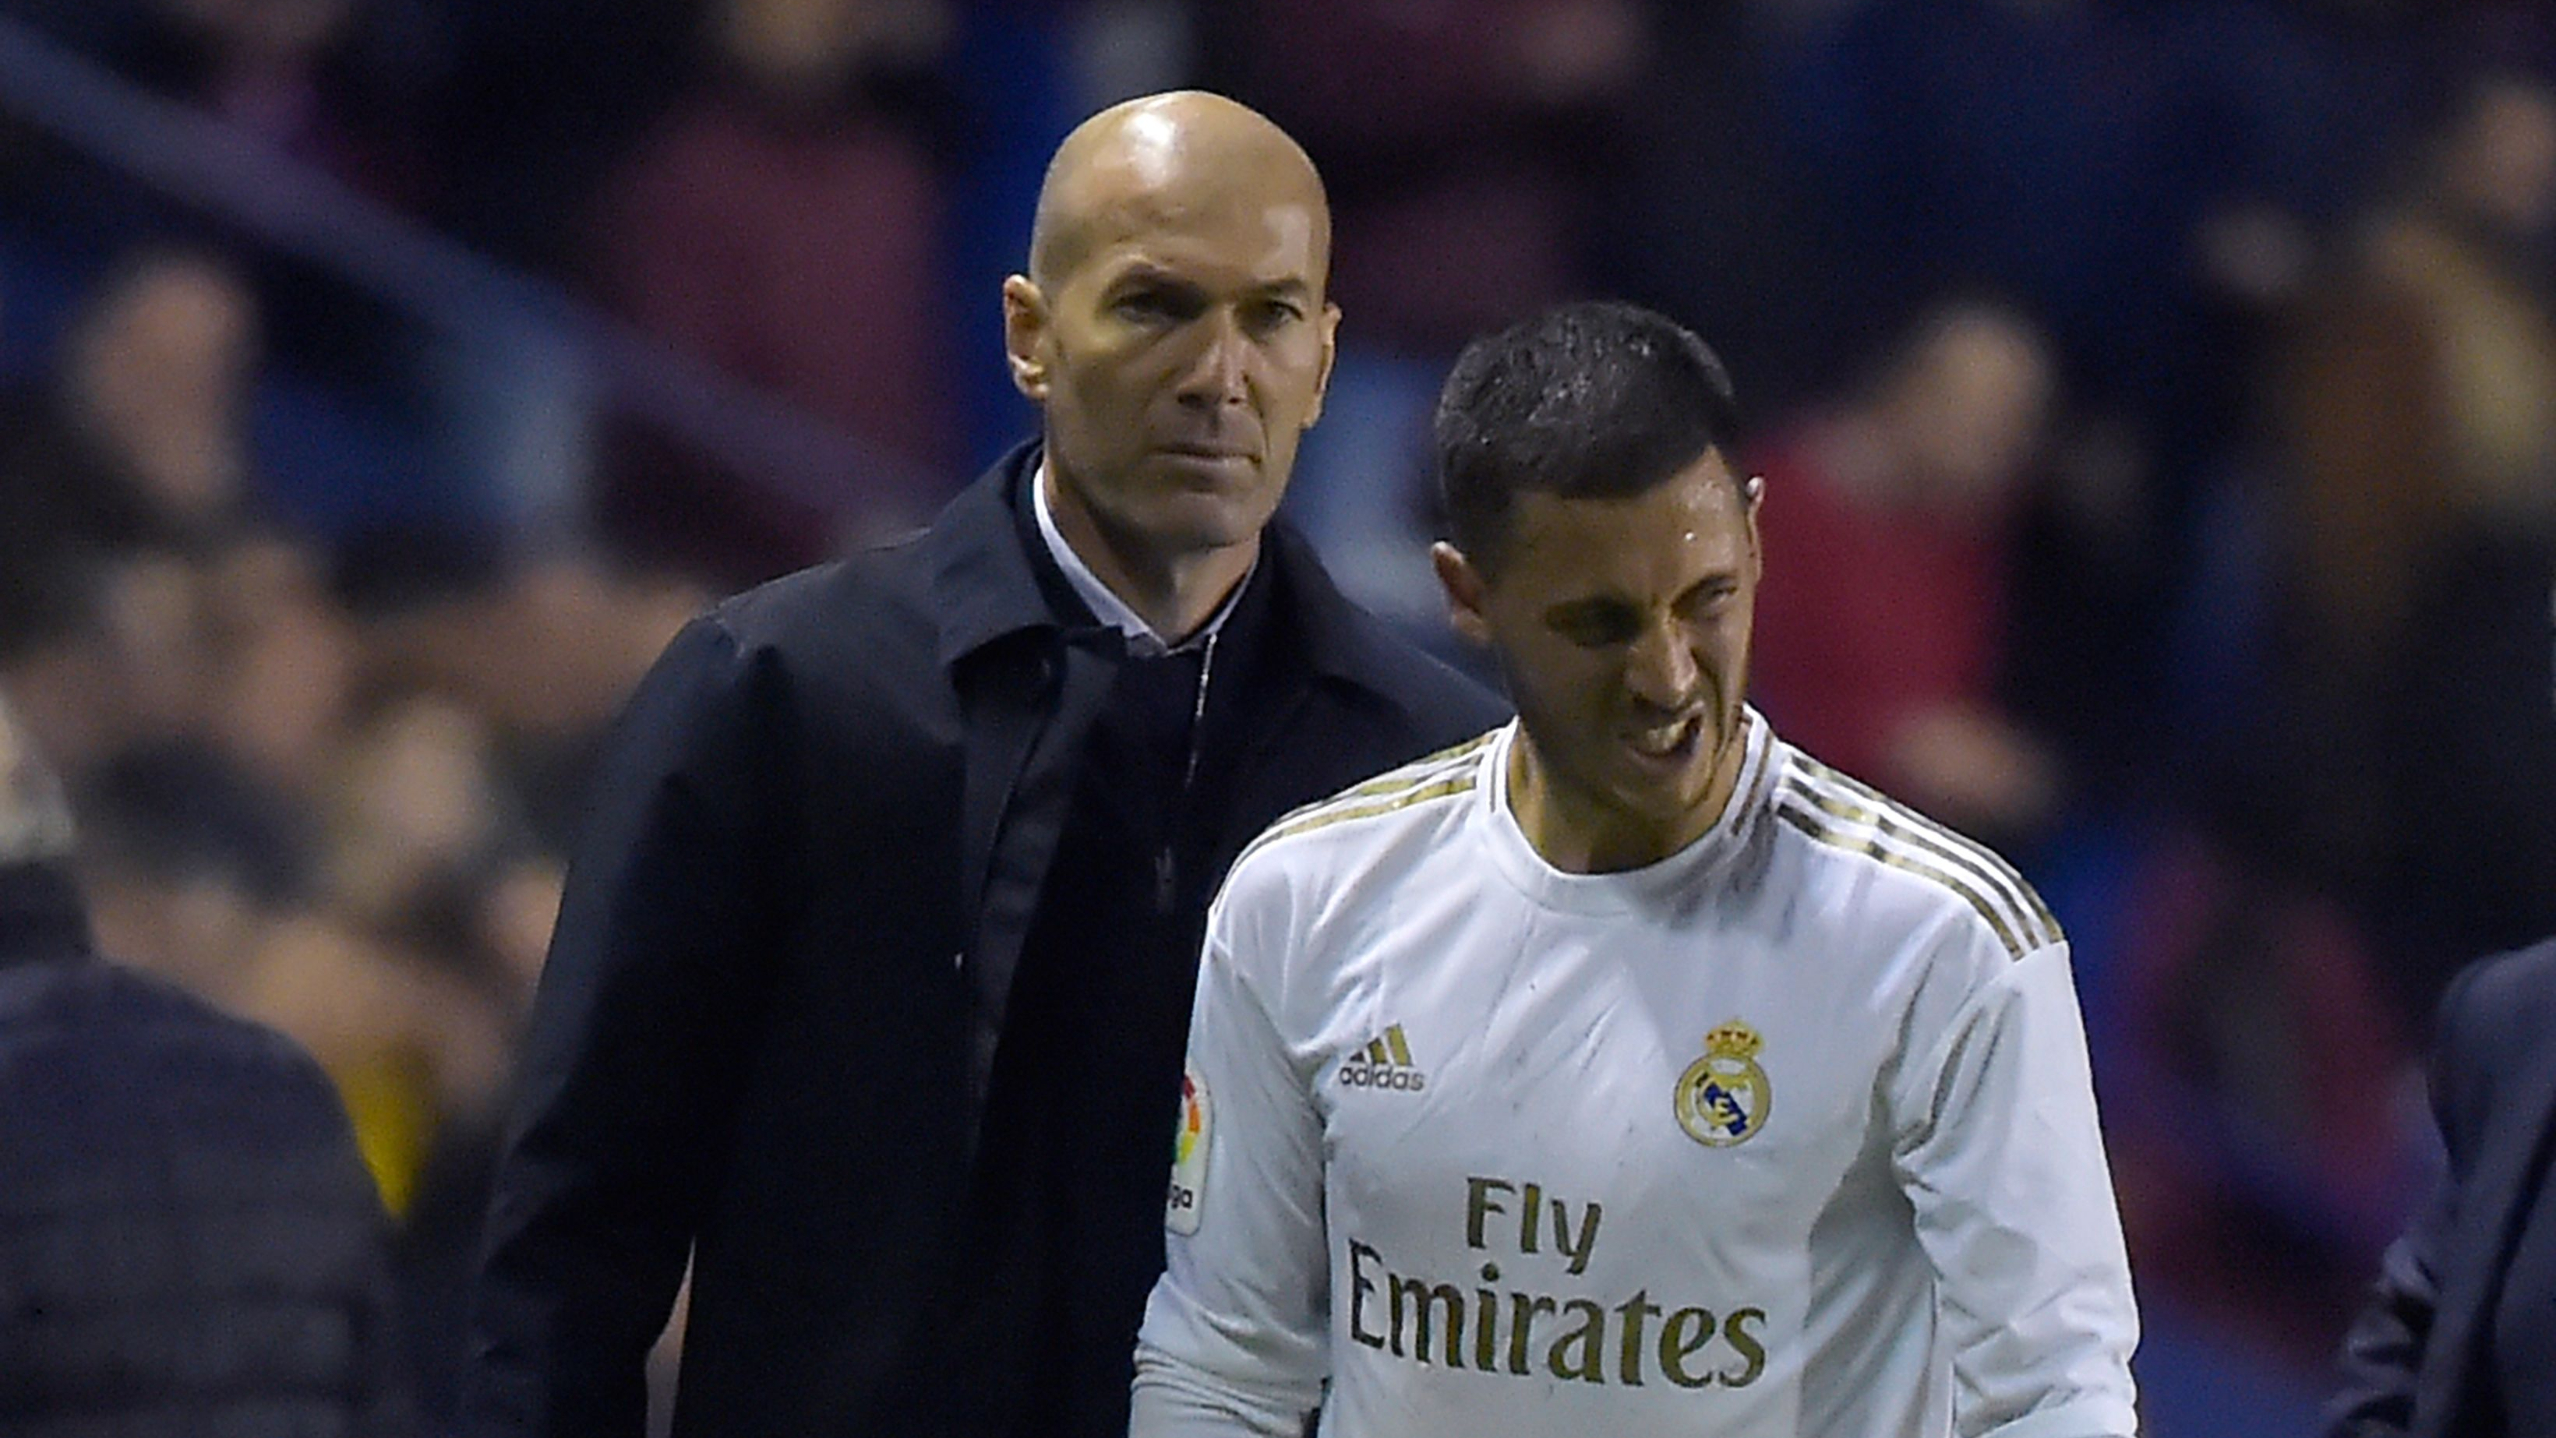 'Eden's having a hard time' - Hazard to miss Athletic clash as Zidane protects Real Madrid star